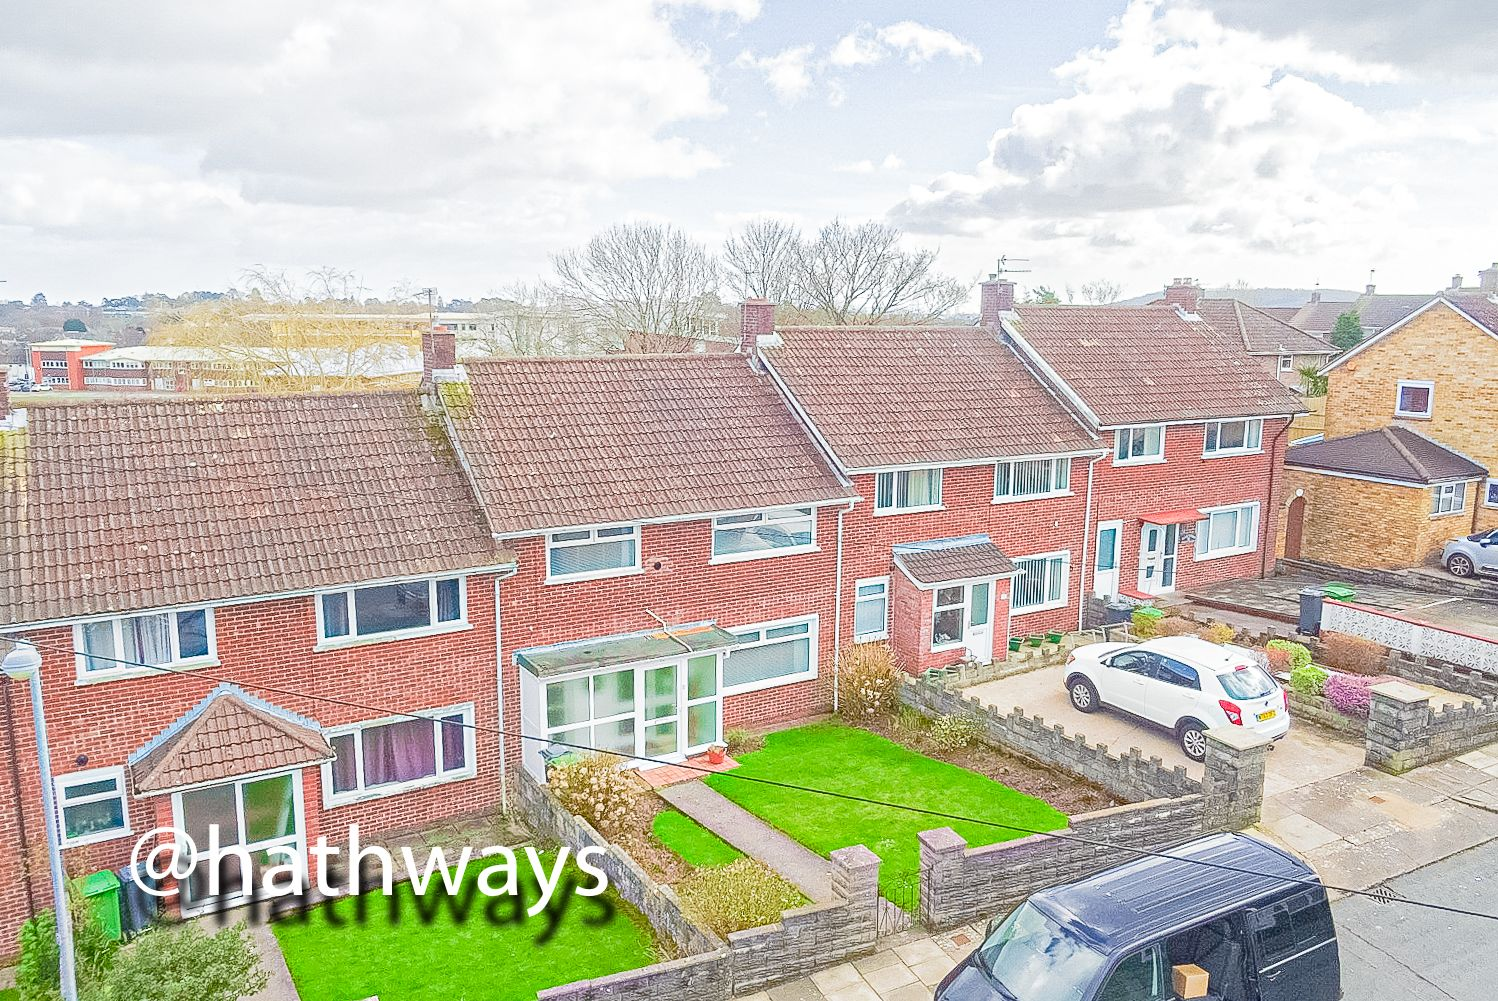 3 bed house for sale in Ashcroft Crescent, CF5